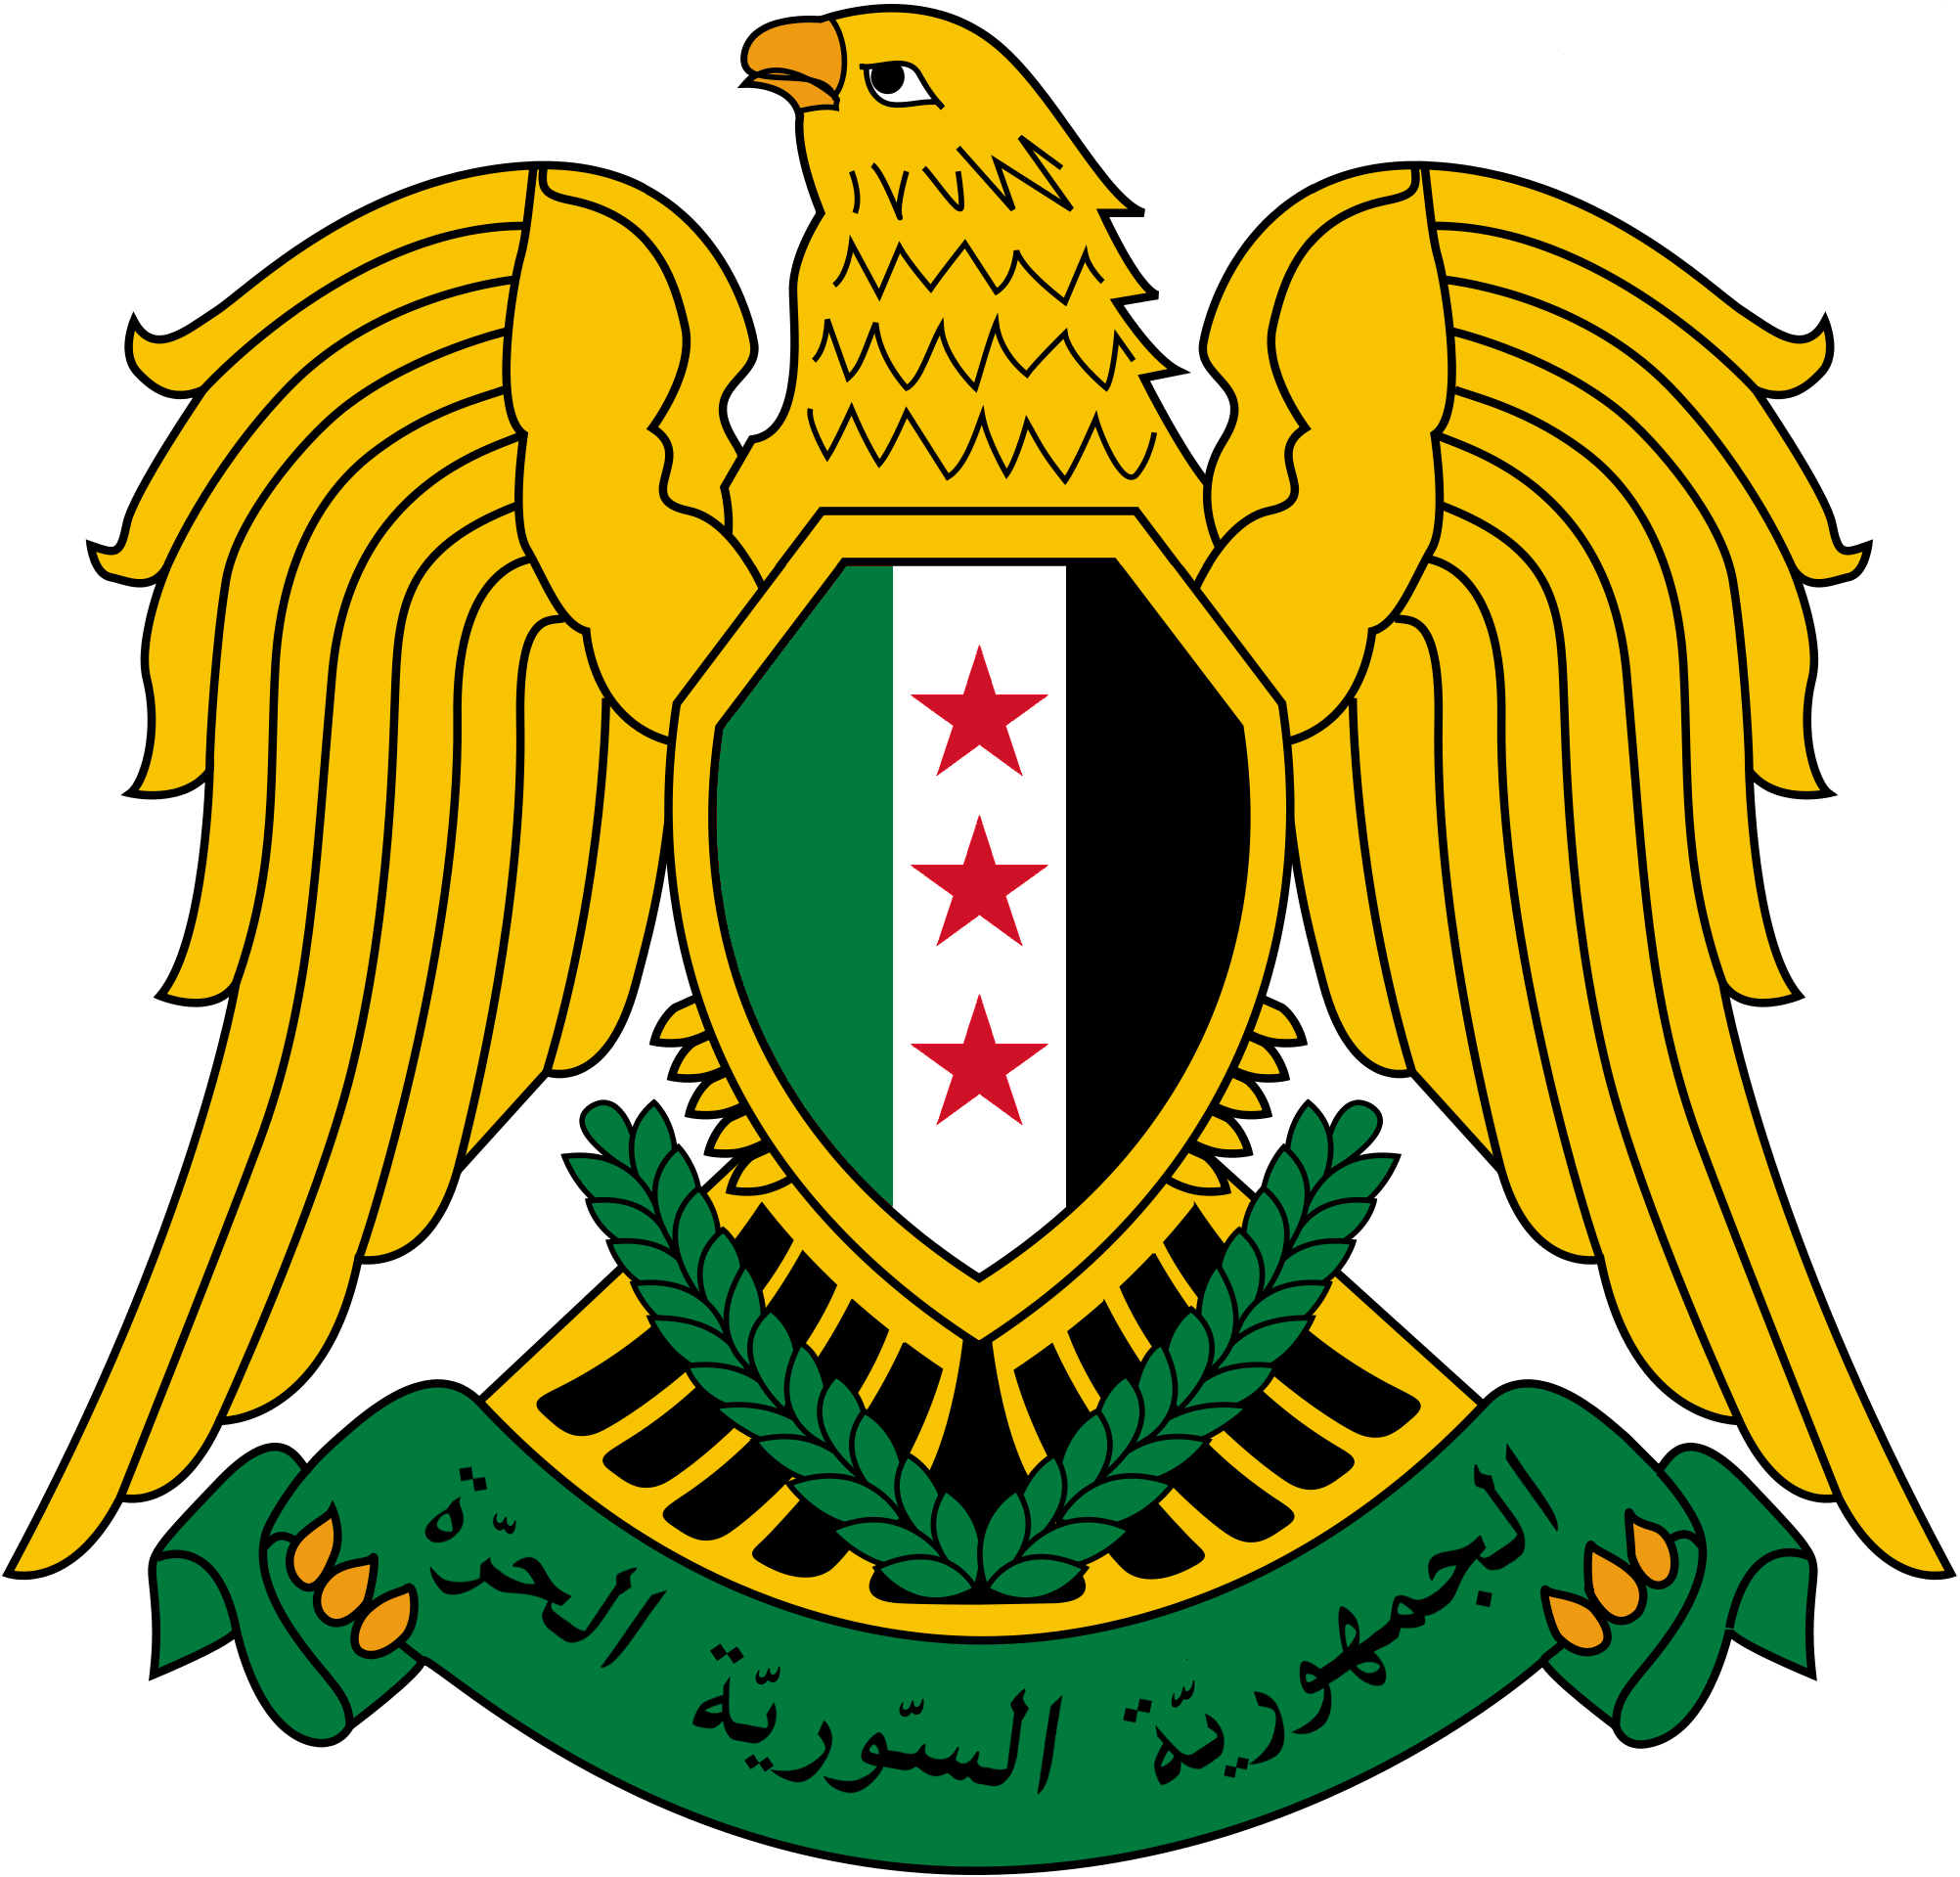 A proposed coat of arms of the Free Syrian Republic (to be established) Harry Potter and the Half Blood Prince